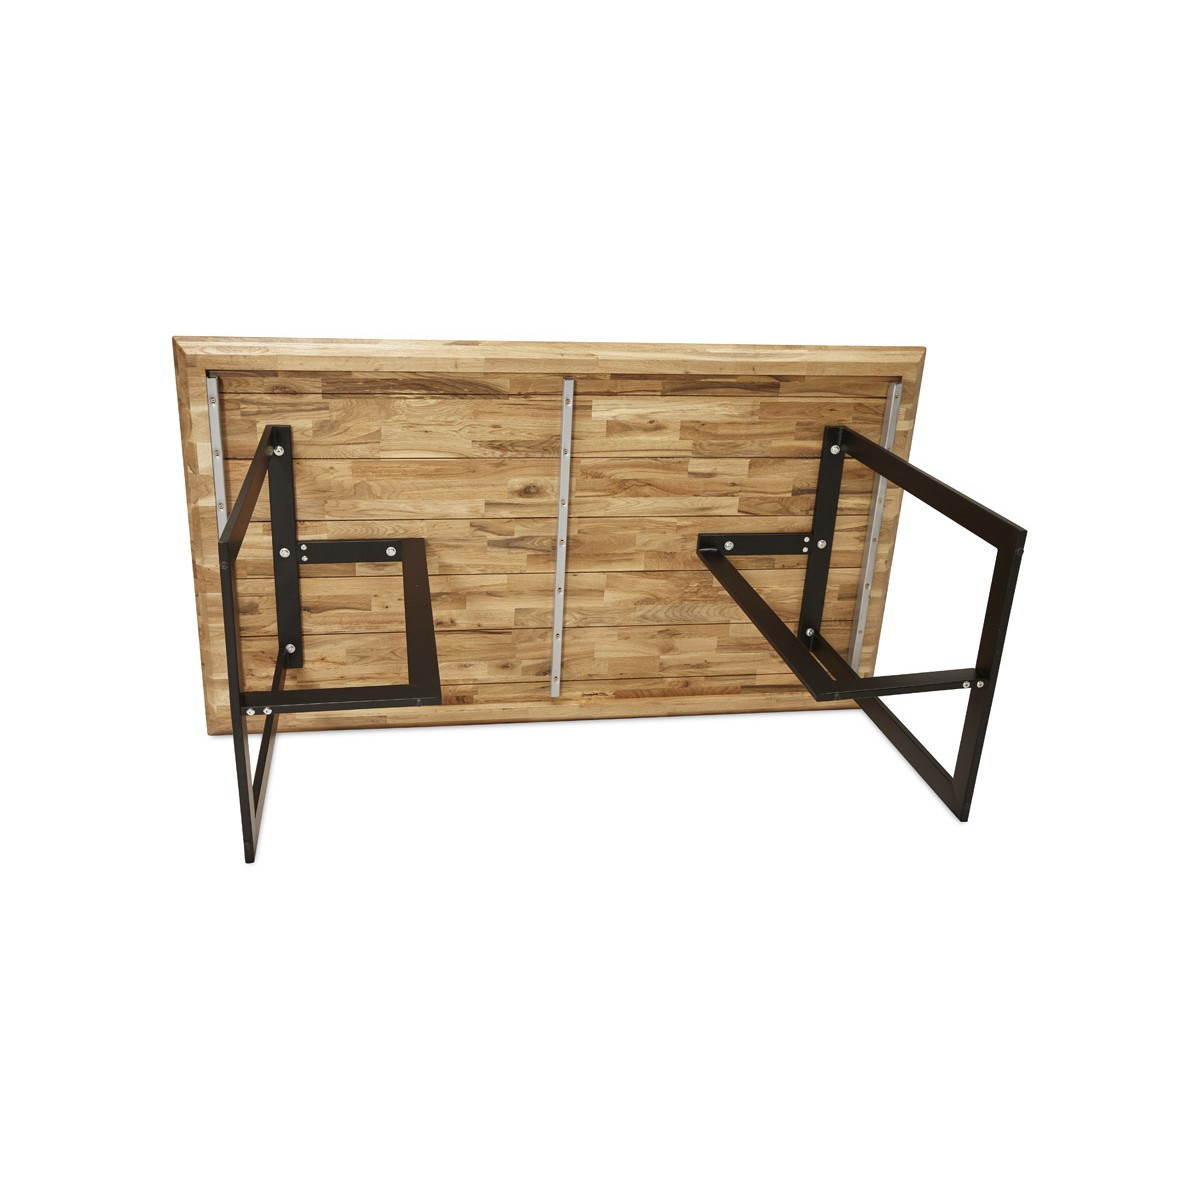 Table moderne rectangulaire nanou en ch ne bois naturel for Table bois massif moderne